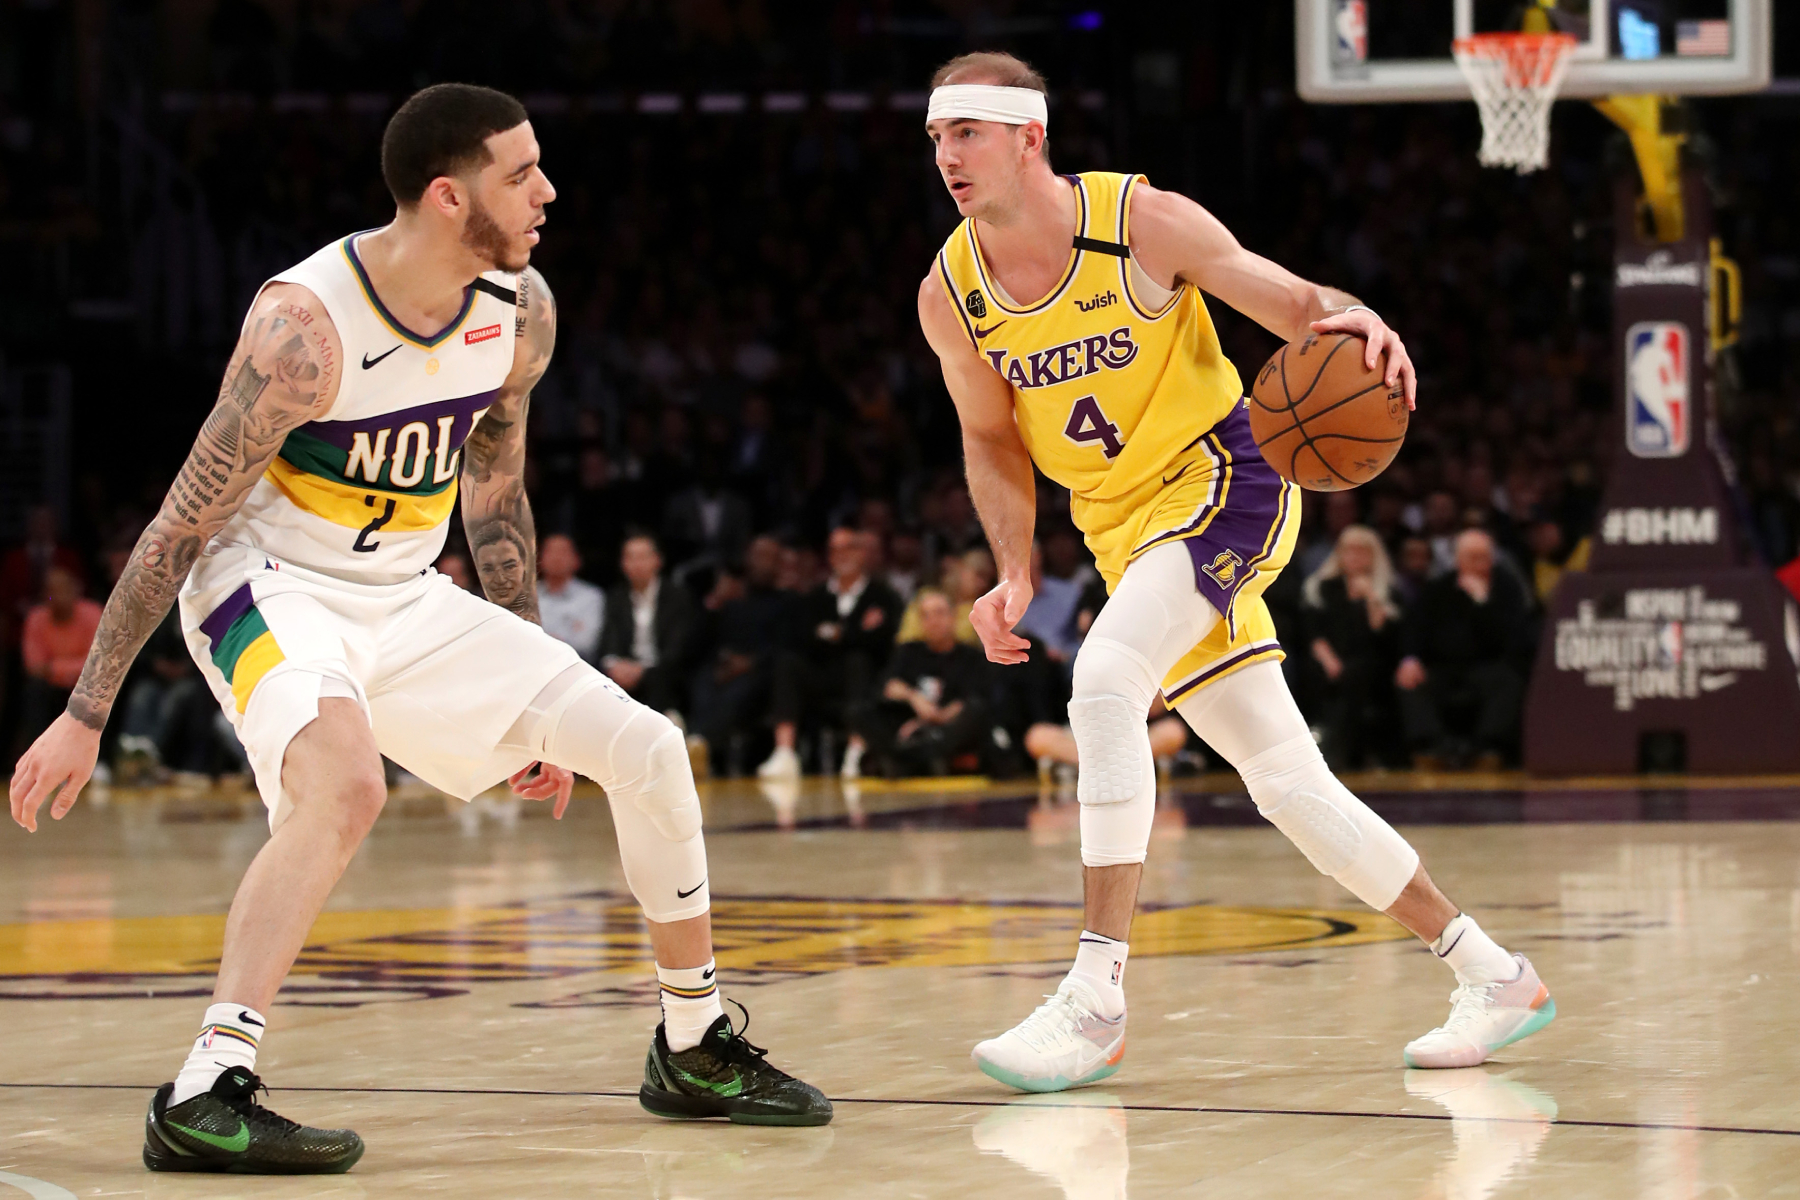 Alex Caruso has become an essential piece on the LA Lakers. So, before he became an NBA star, what college team did Caruso play on?